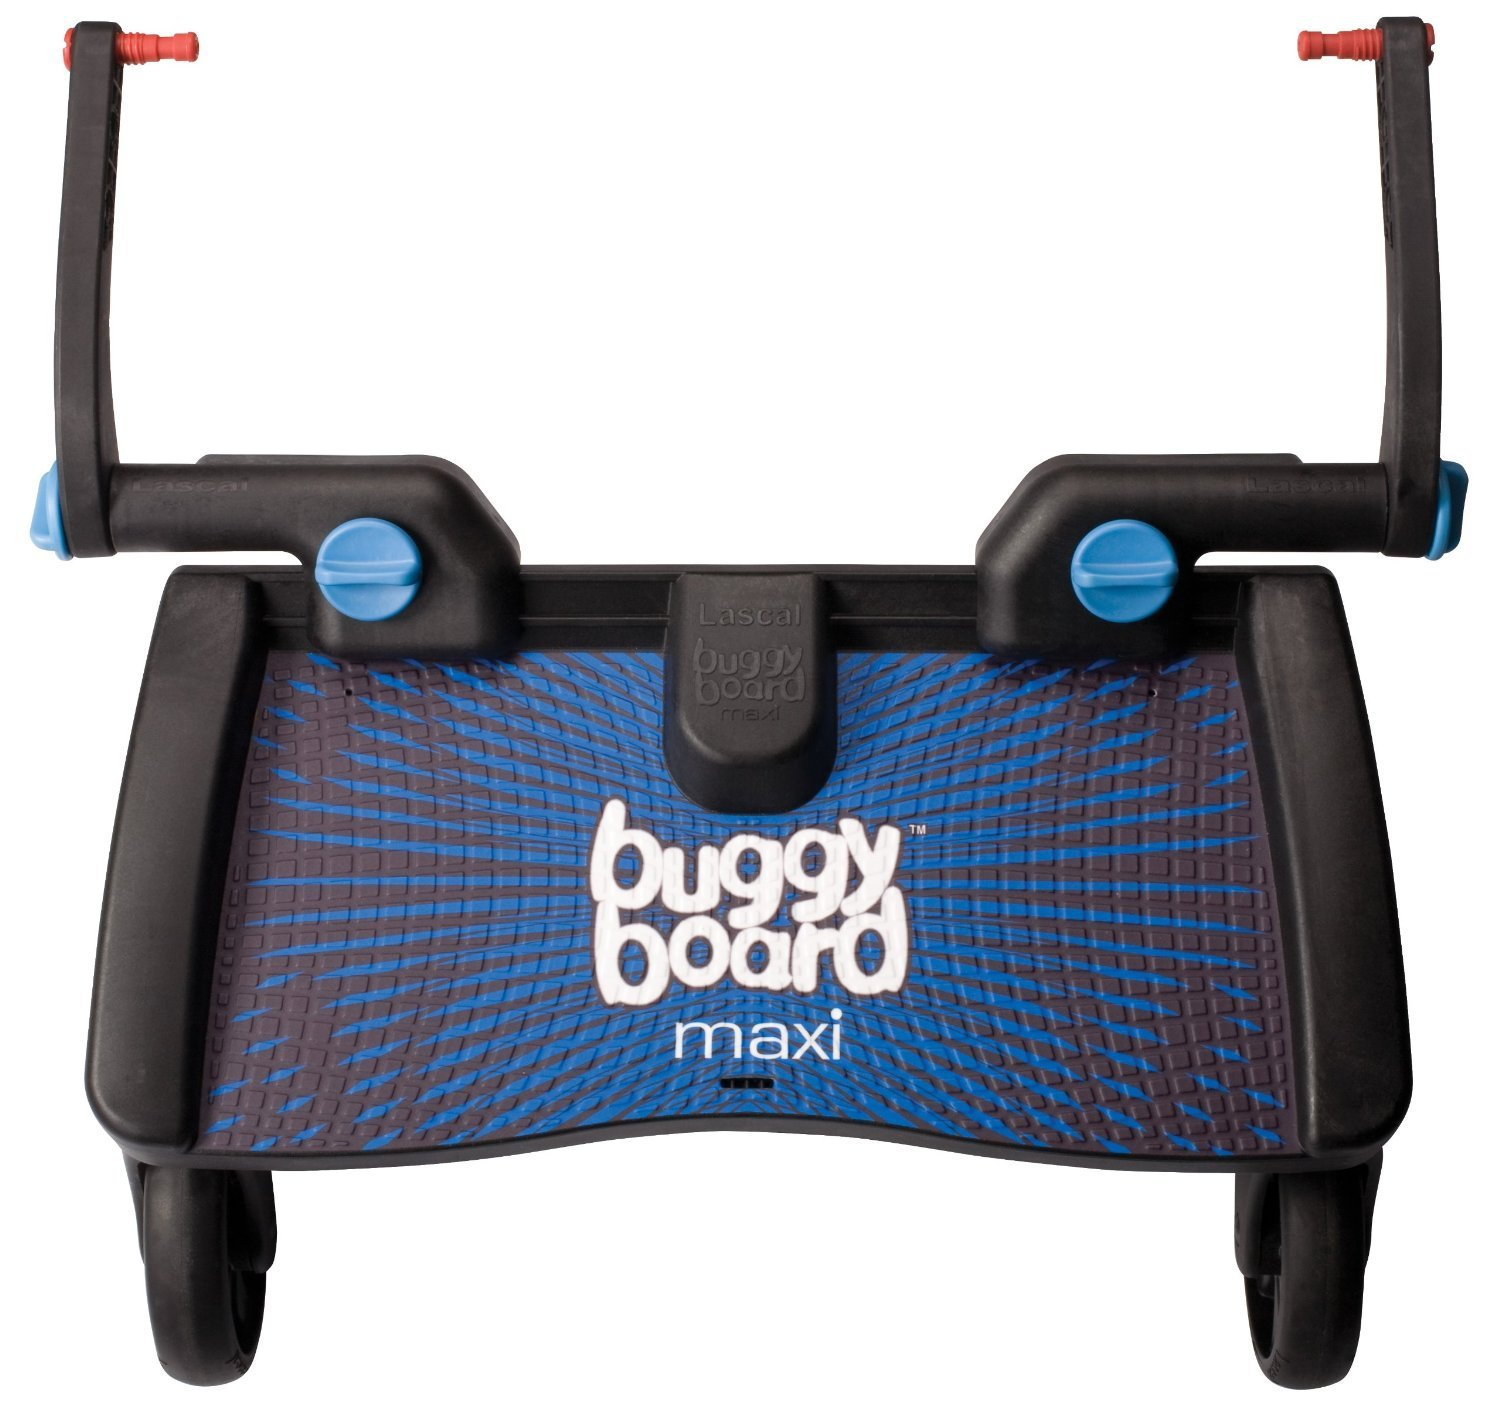 BuggyBoard Maxi - Red Lascal 2550